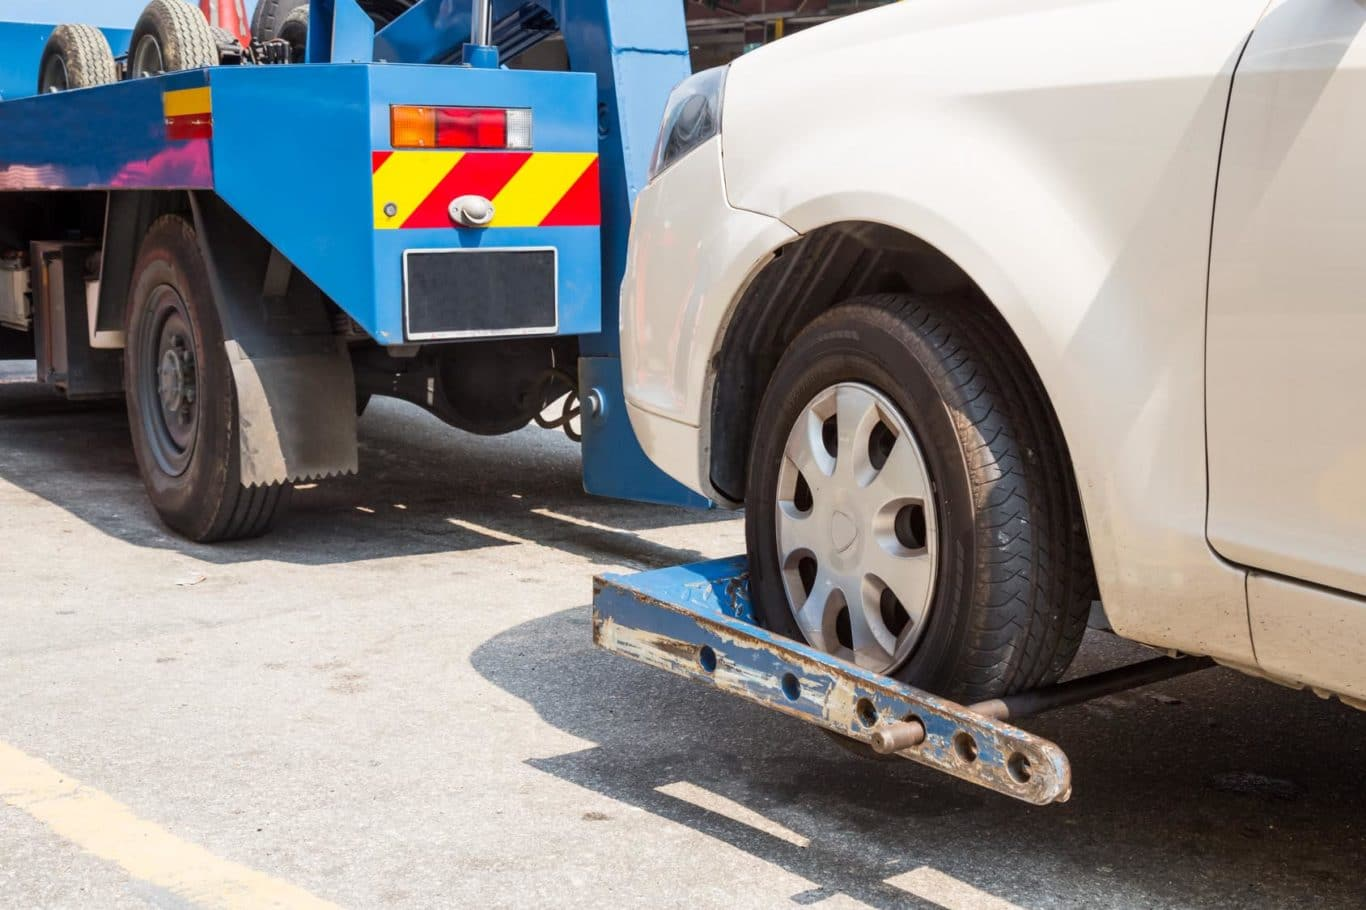 Damastown expert Breakdown Recovery services